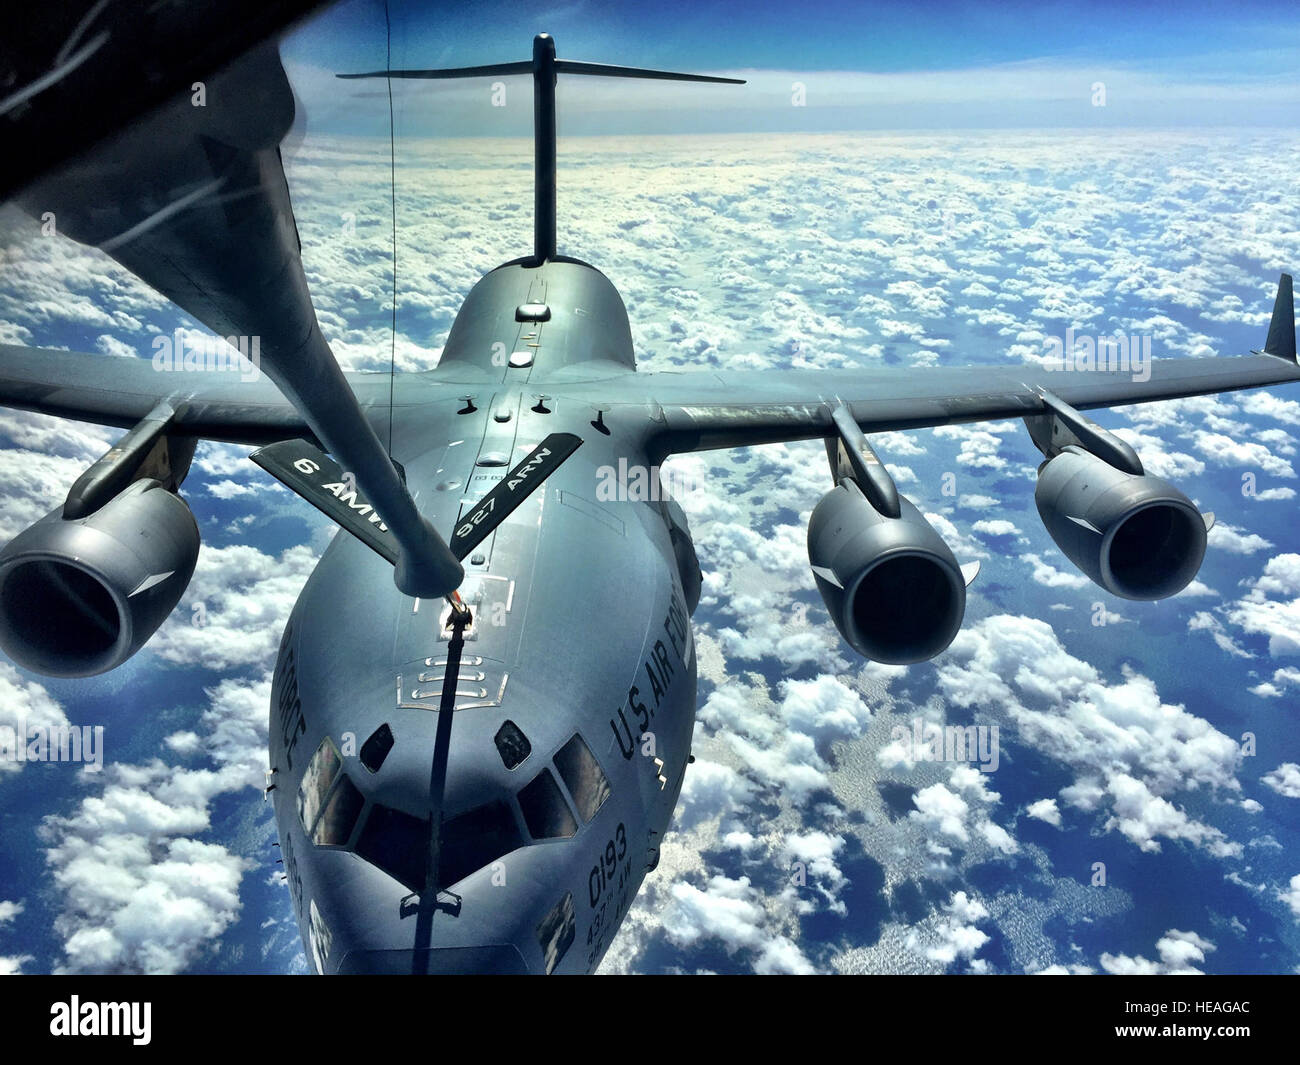 A C-17 Globemaster is refueled by a MacDill KC-135 Stratotanker during a pilot training mission off the coast of Stock Photo